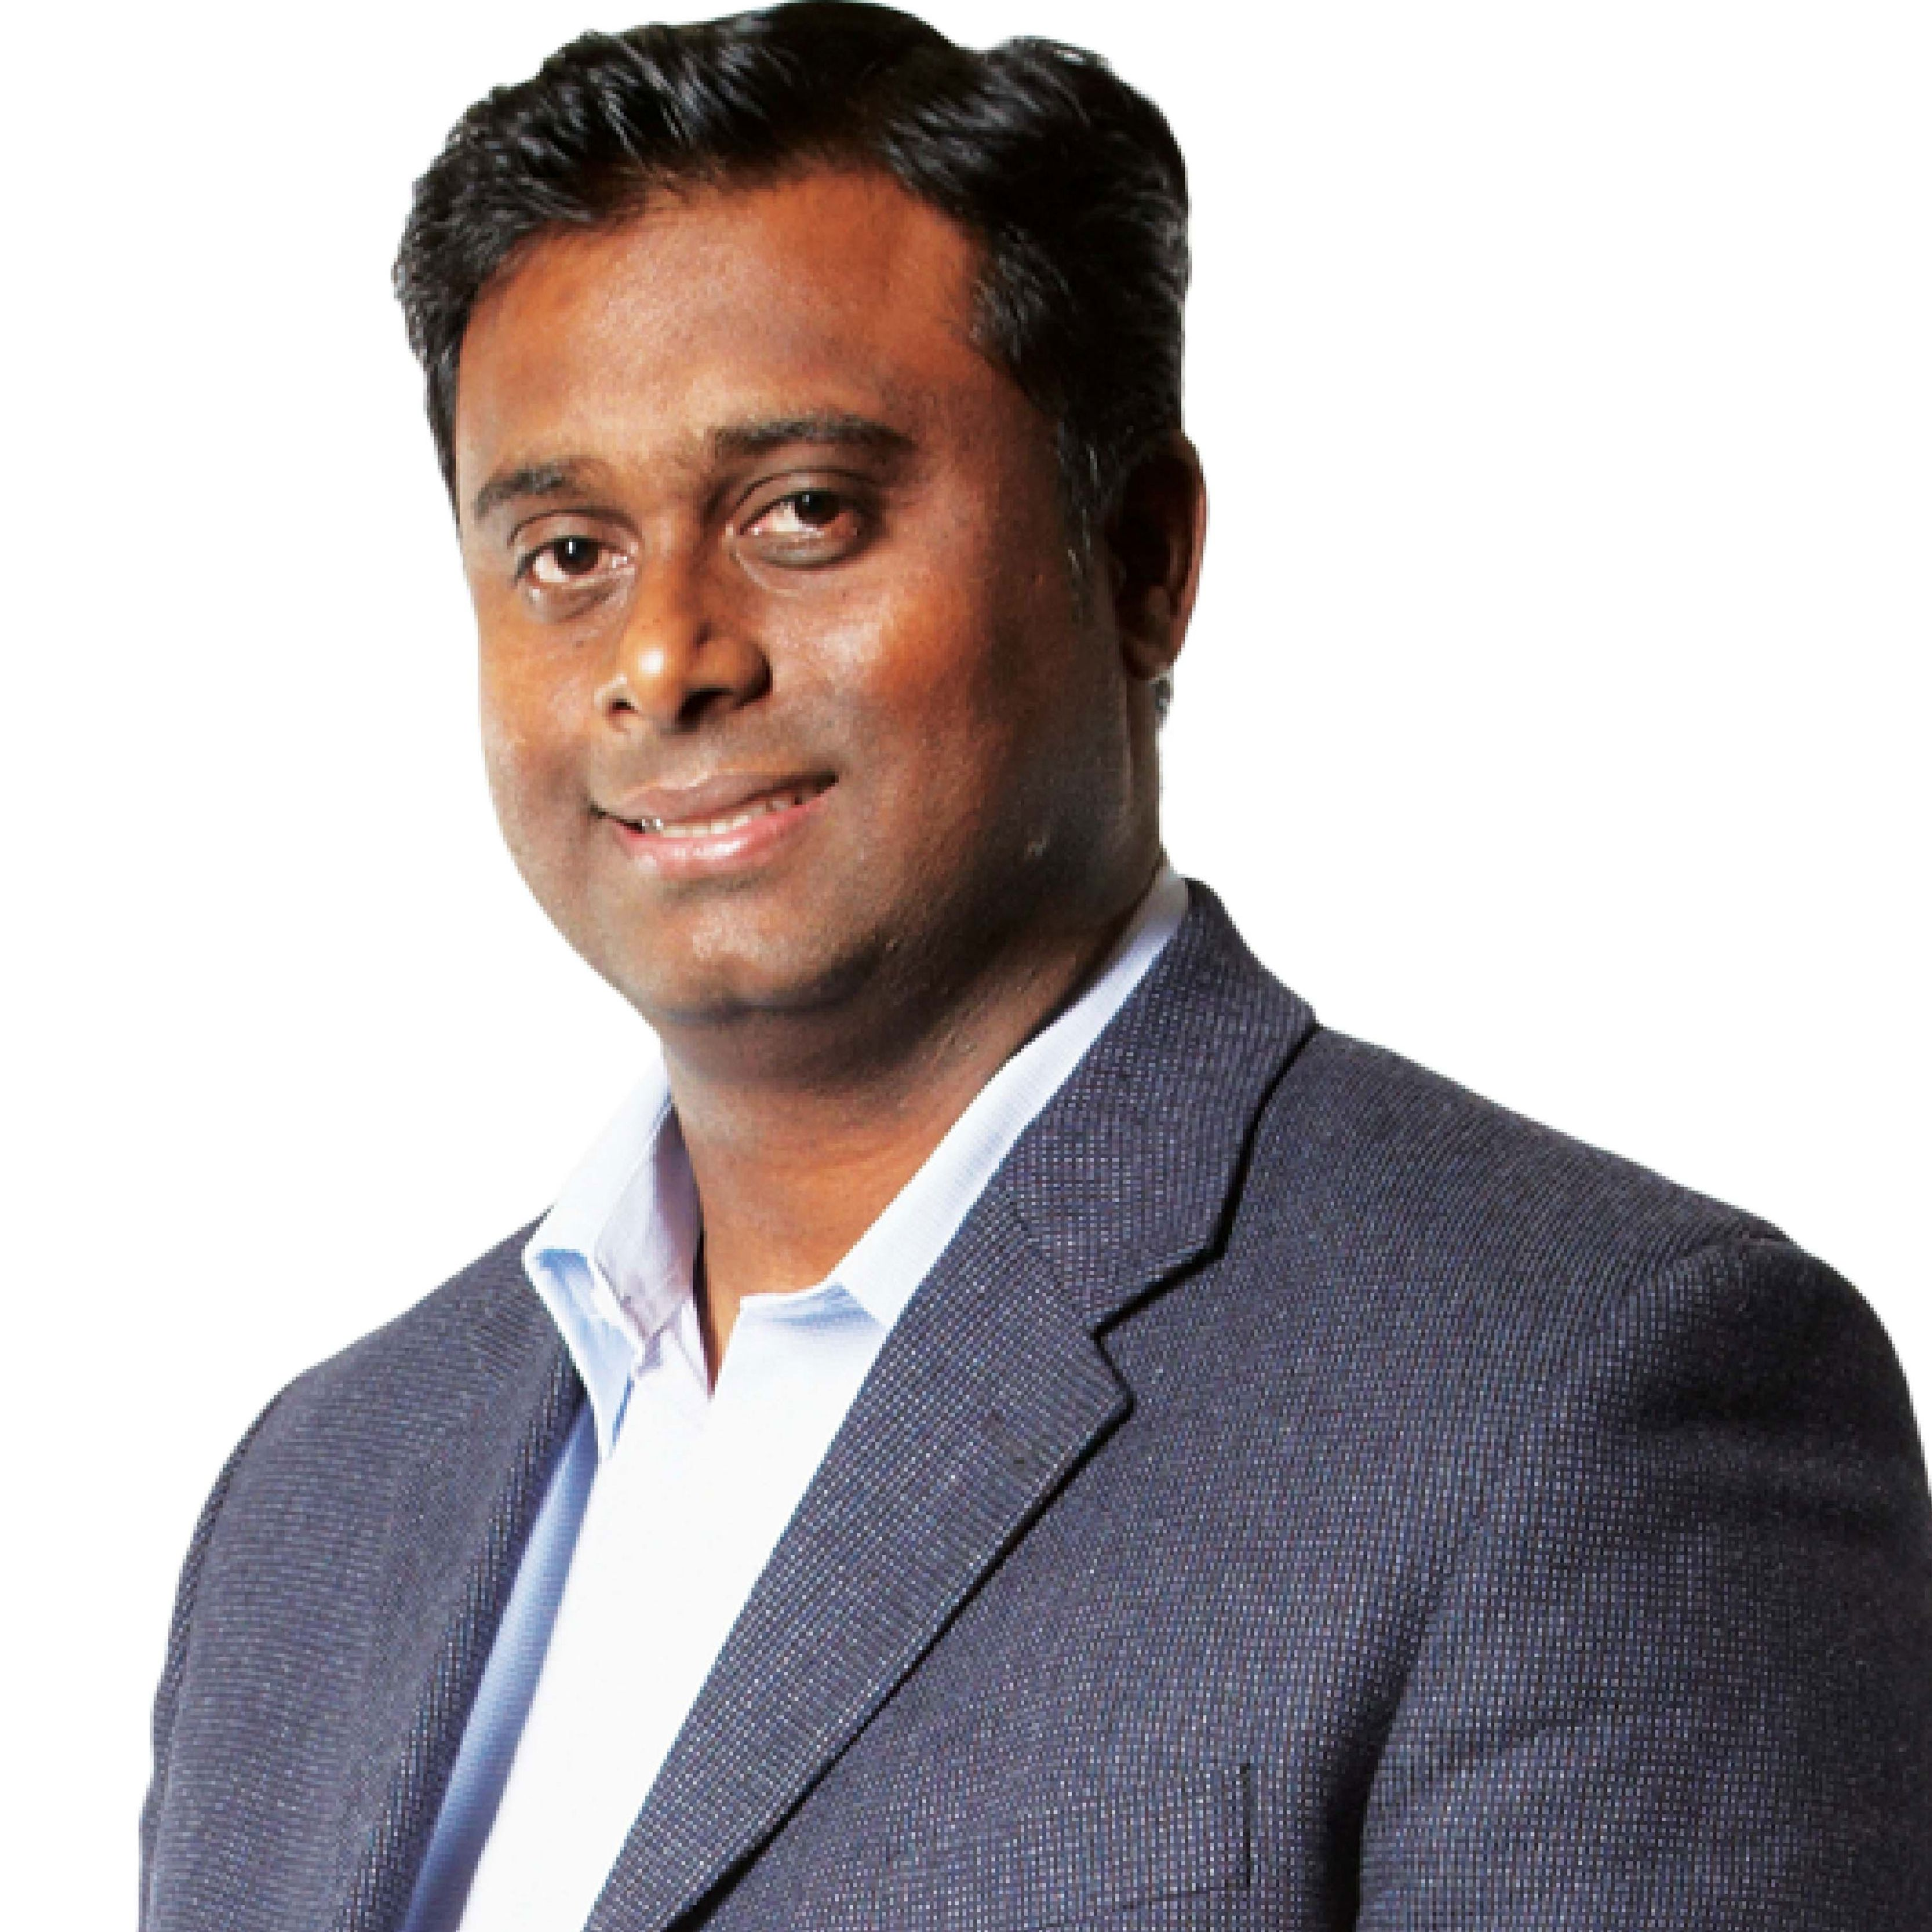 Profile photo of Anil Rambally, Executive Manager: Sustainability and Preferential Purchasing at Astral Foods